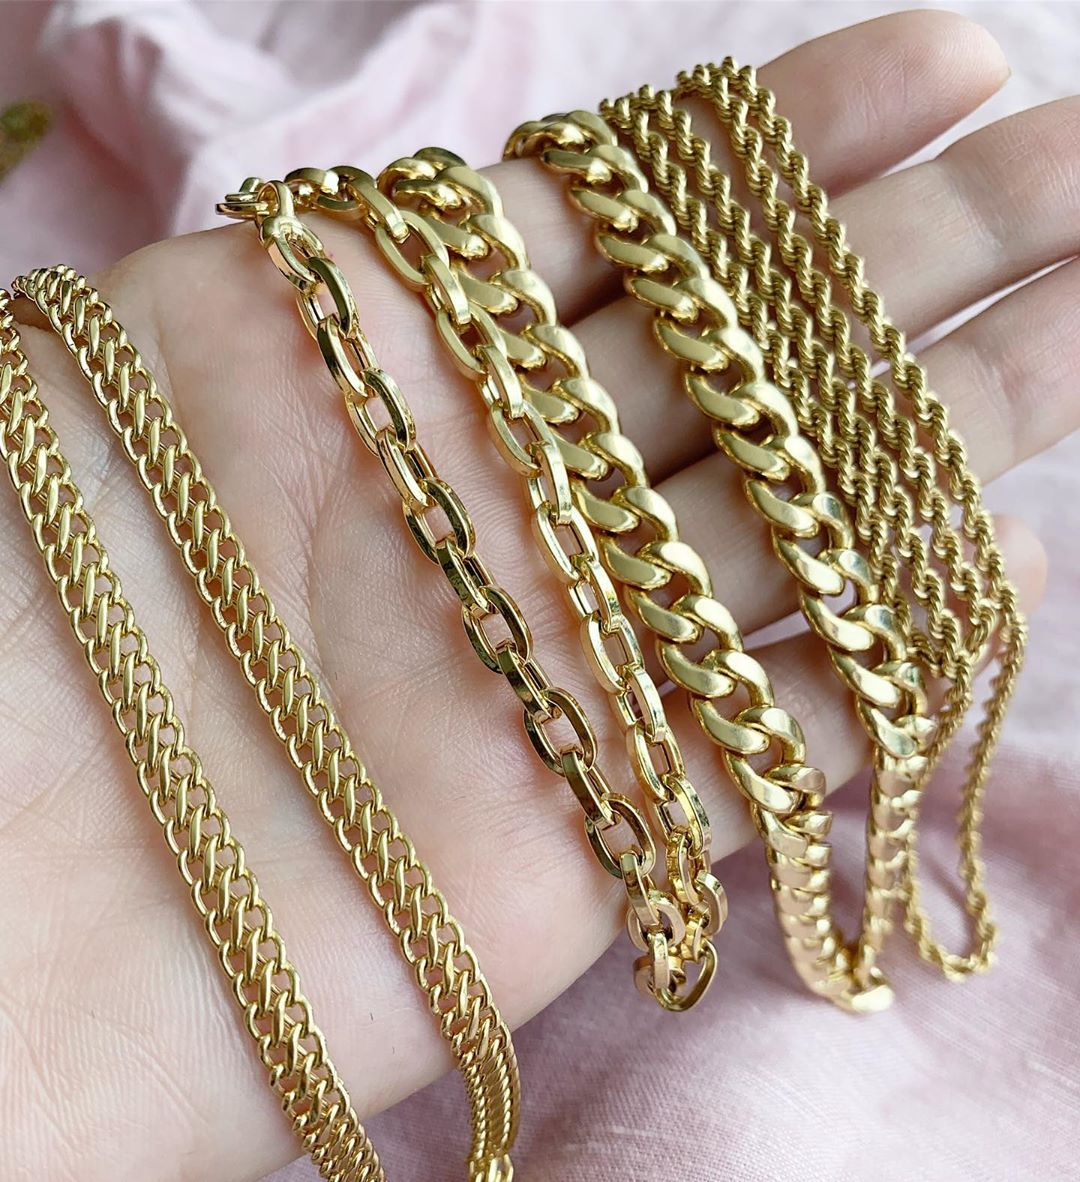 Julio Cuellar Jewelry - In case you haven't heard, a thick gold chain is the next It piece, and no one makes them better than Julio Cuellar. With all different links, weights, and lengths you are guaranteed to find the perfect single or stack for your style.